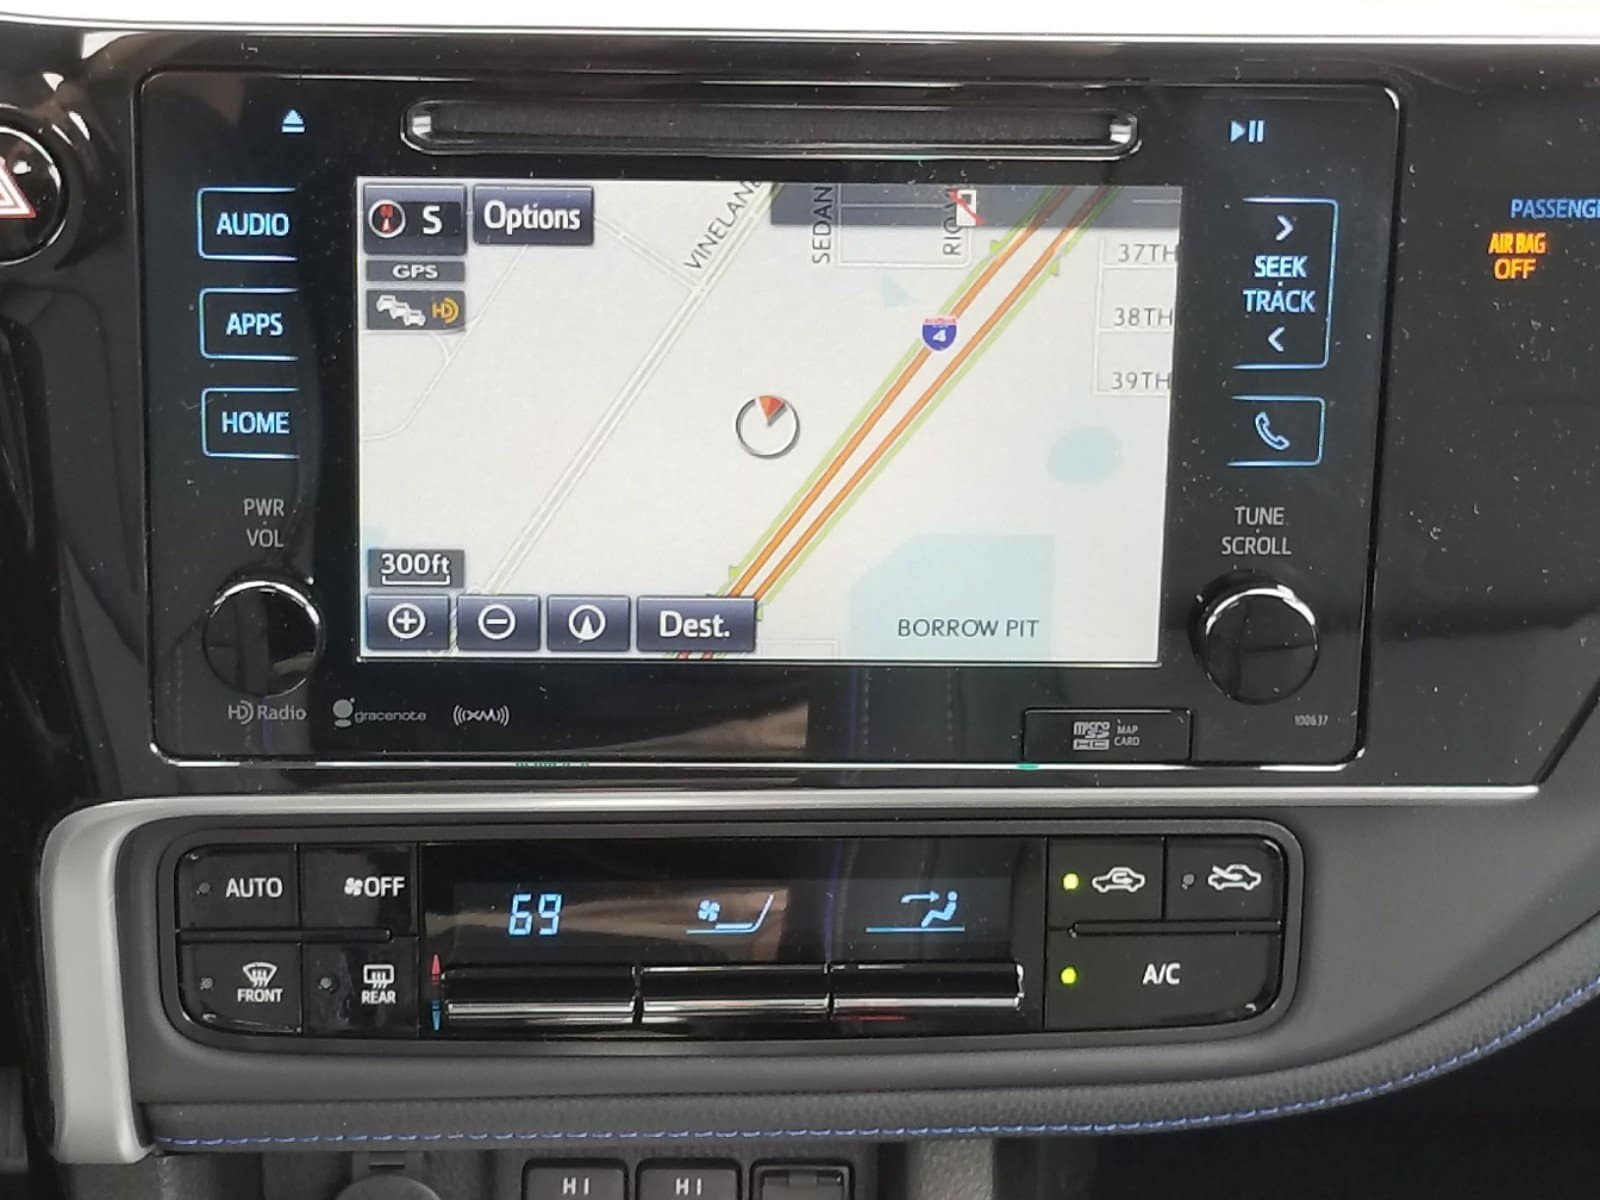 New Entune infotainment in the N Charlotte Toyota Corolla